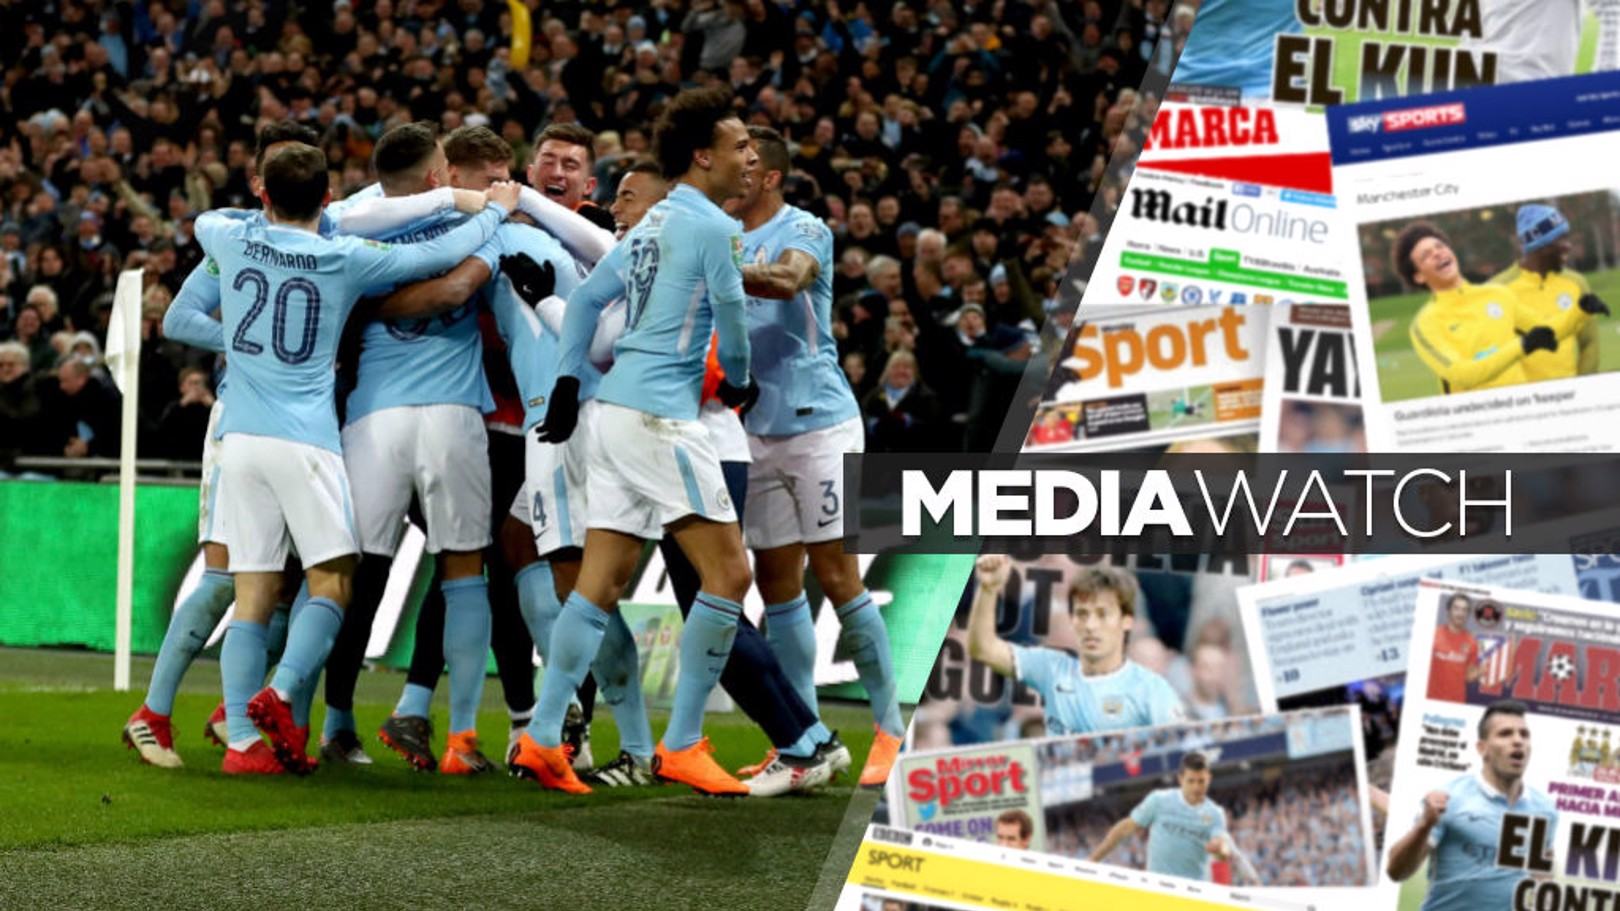 REACTION: City have received plenty of plaudits for the Carabao Cup win.